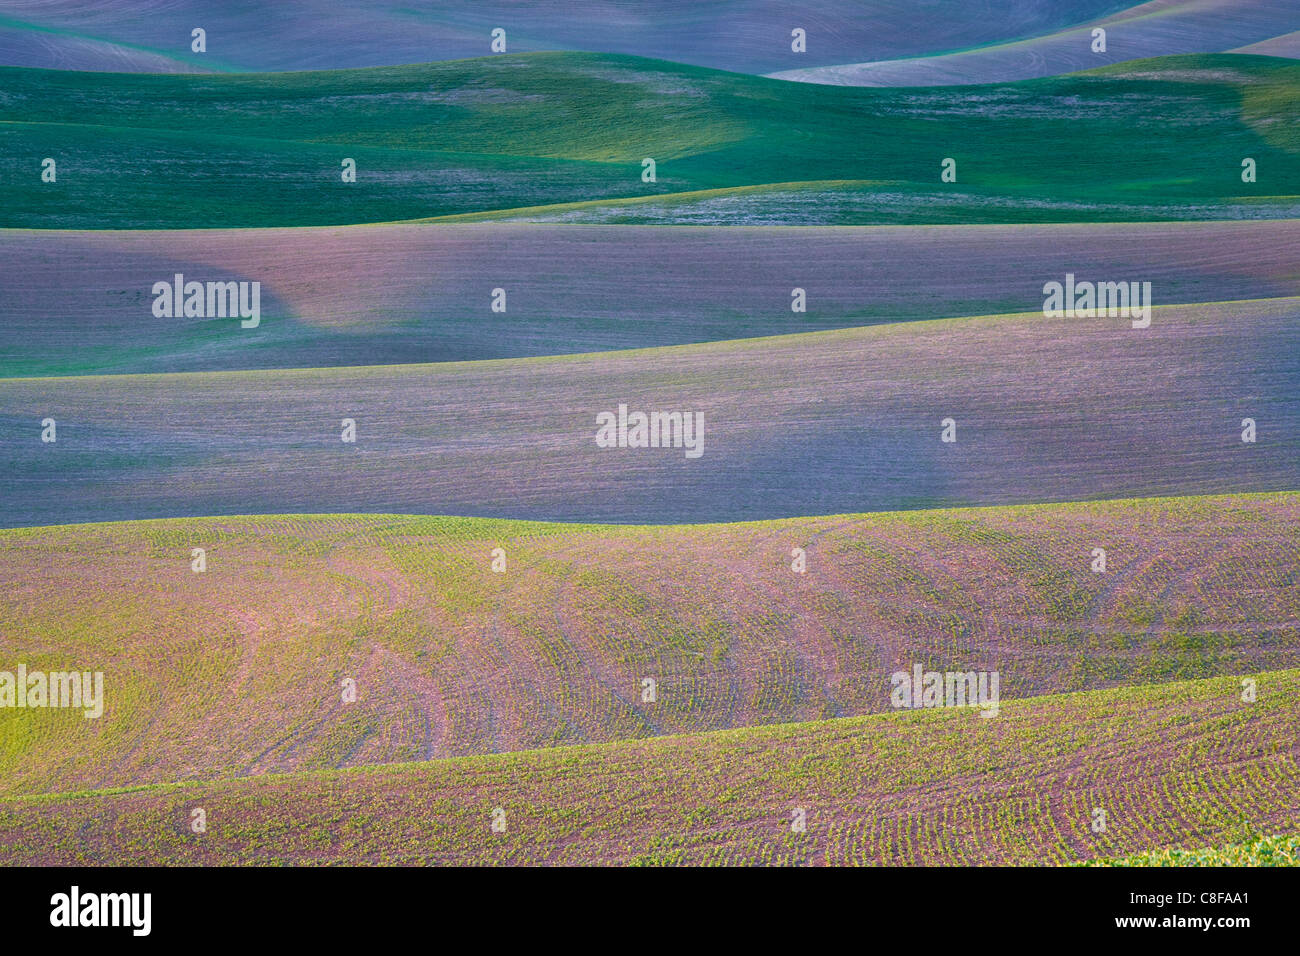 Field patterns at dawn, Palouse, Washington State, United States of America Stock Photo